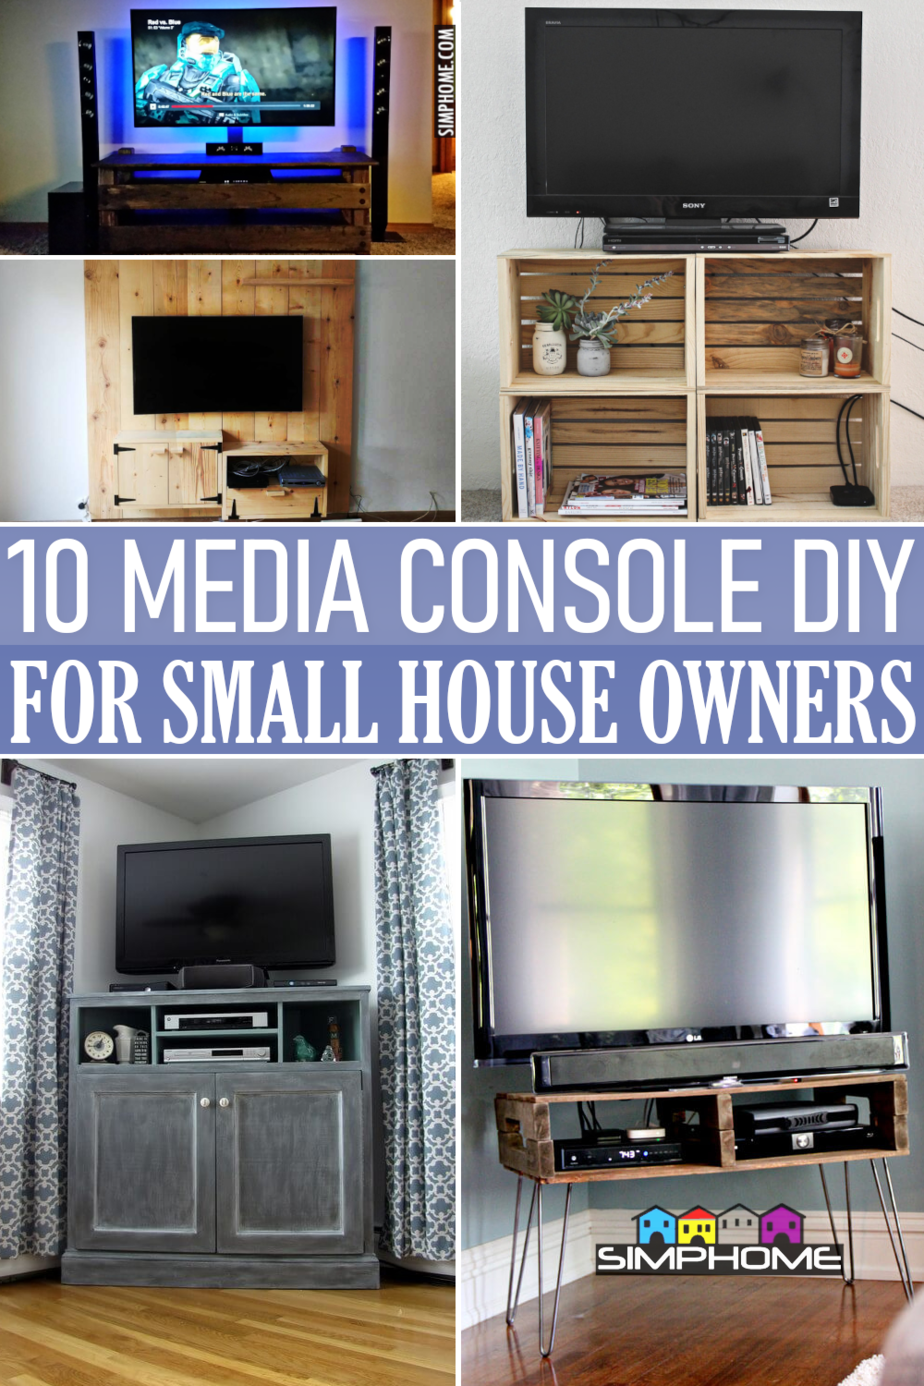 10 Media Console Ideas for Small Property Renters VIA Simphome.comFeatured